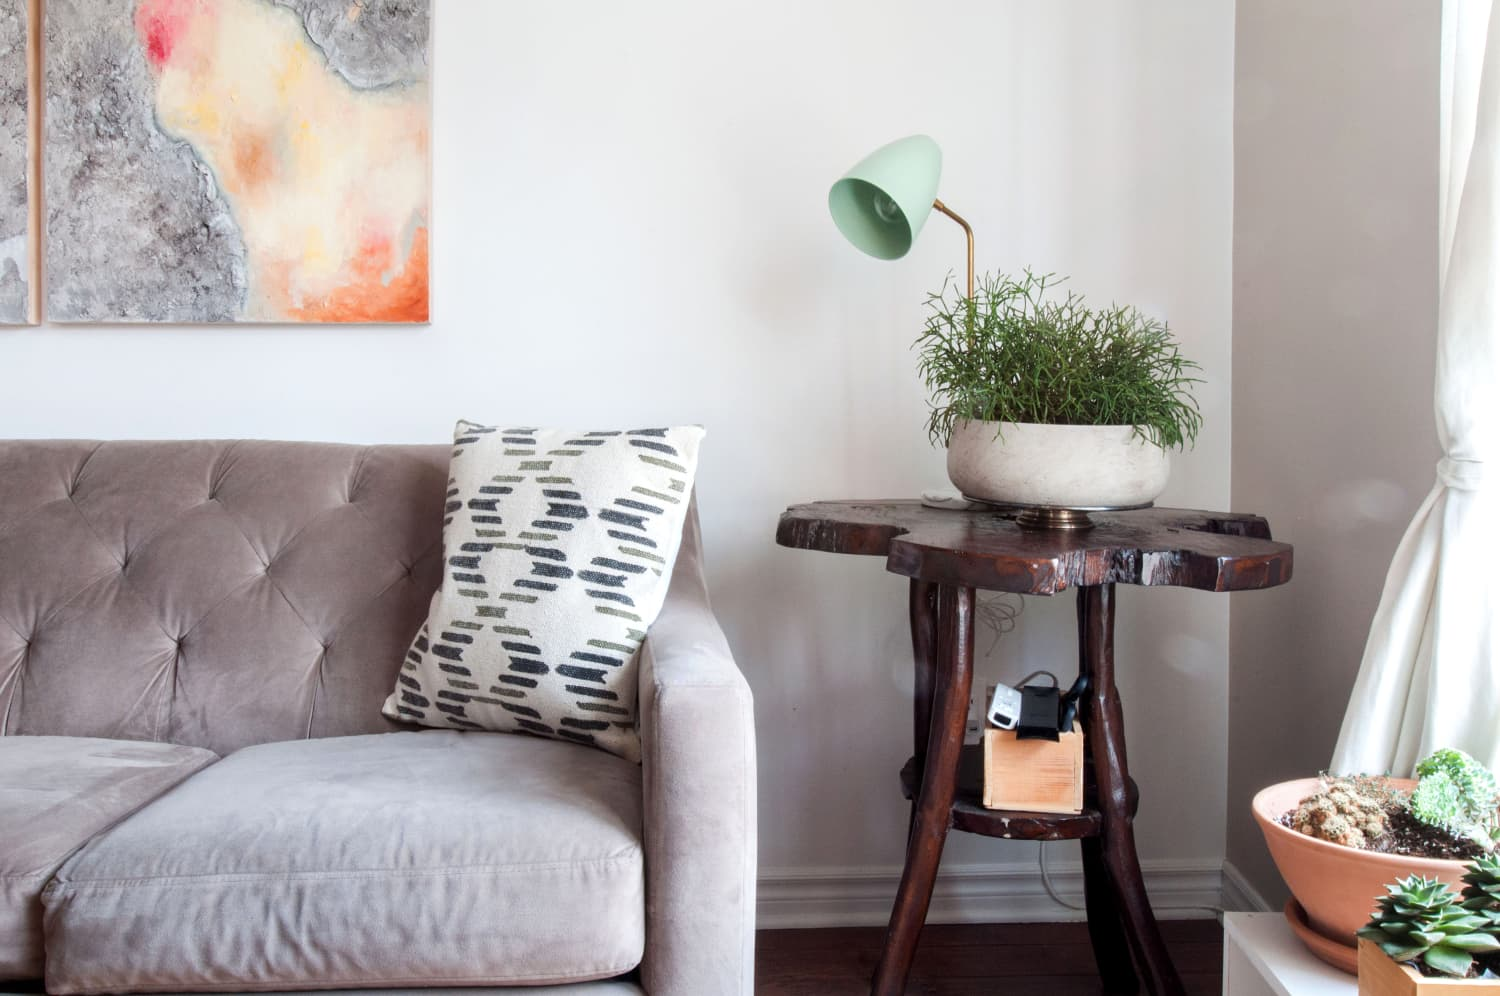 Etsy Employees Tell Us the Under-$25 Buys They Love